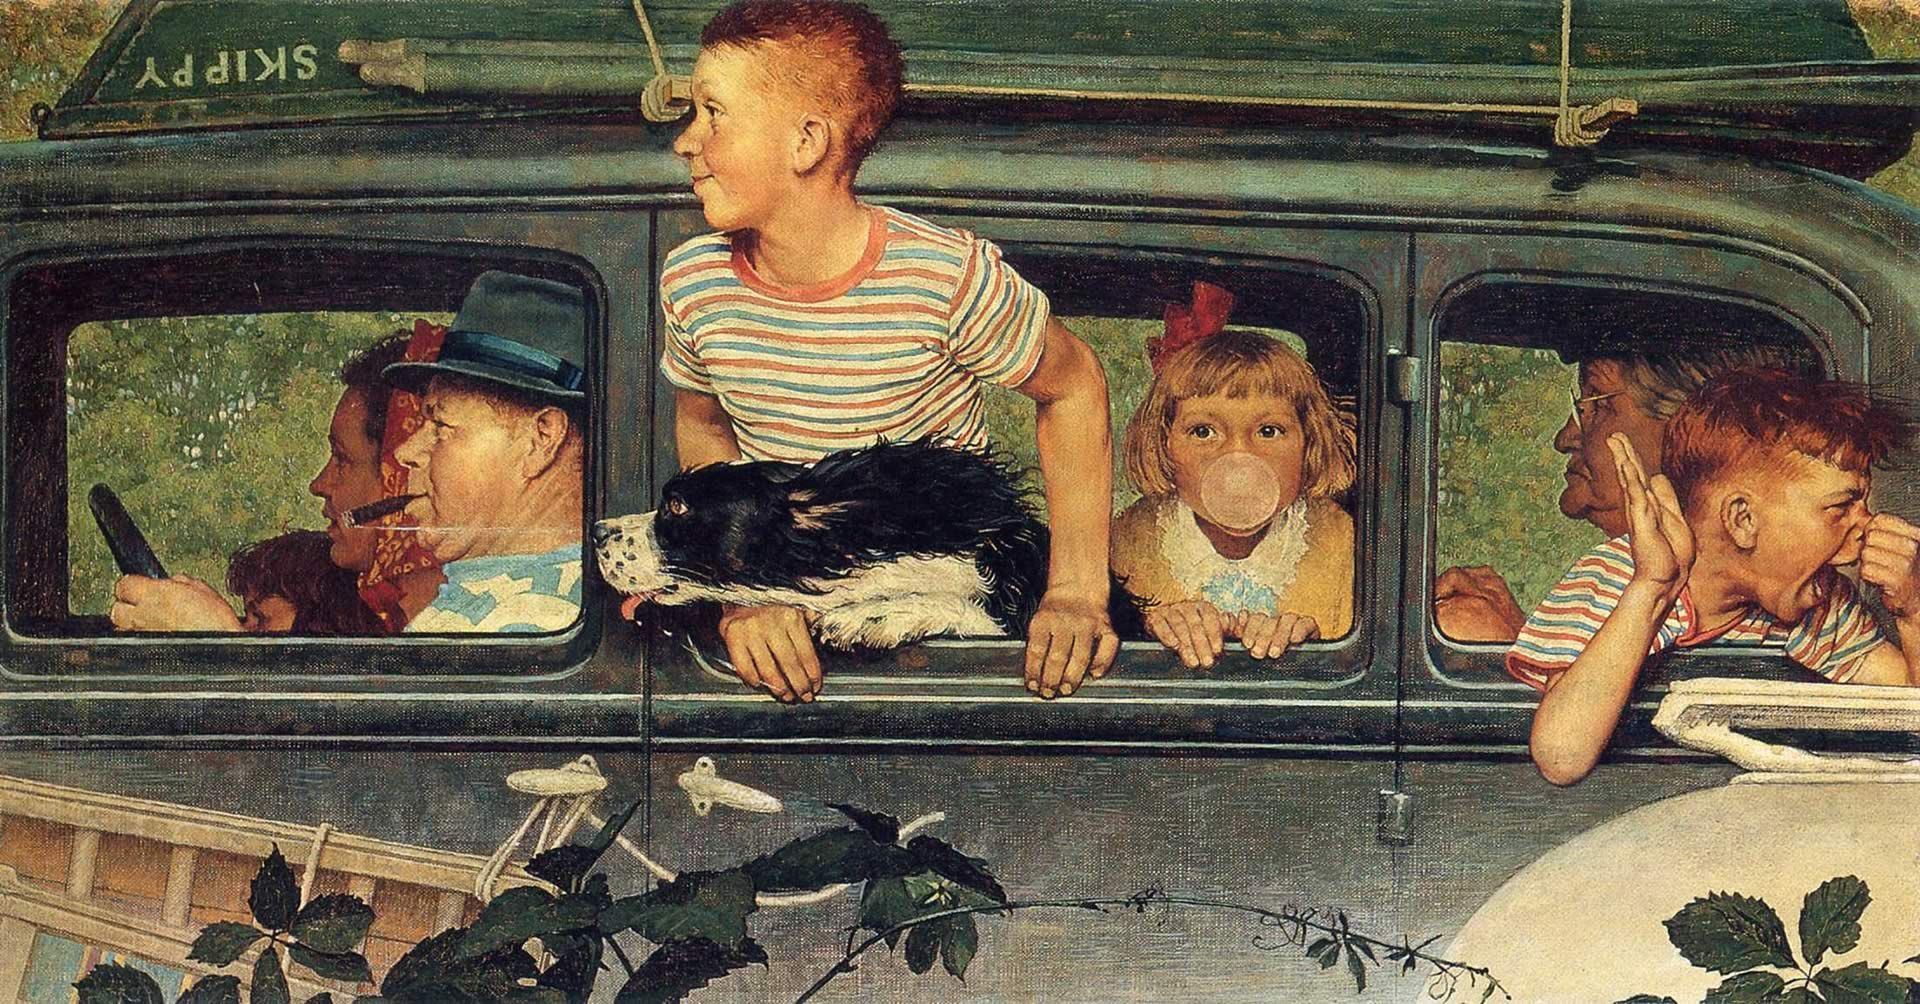 Going - Norman Rockwell Paintings Wallpaper Image | Capturing Joy ...